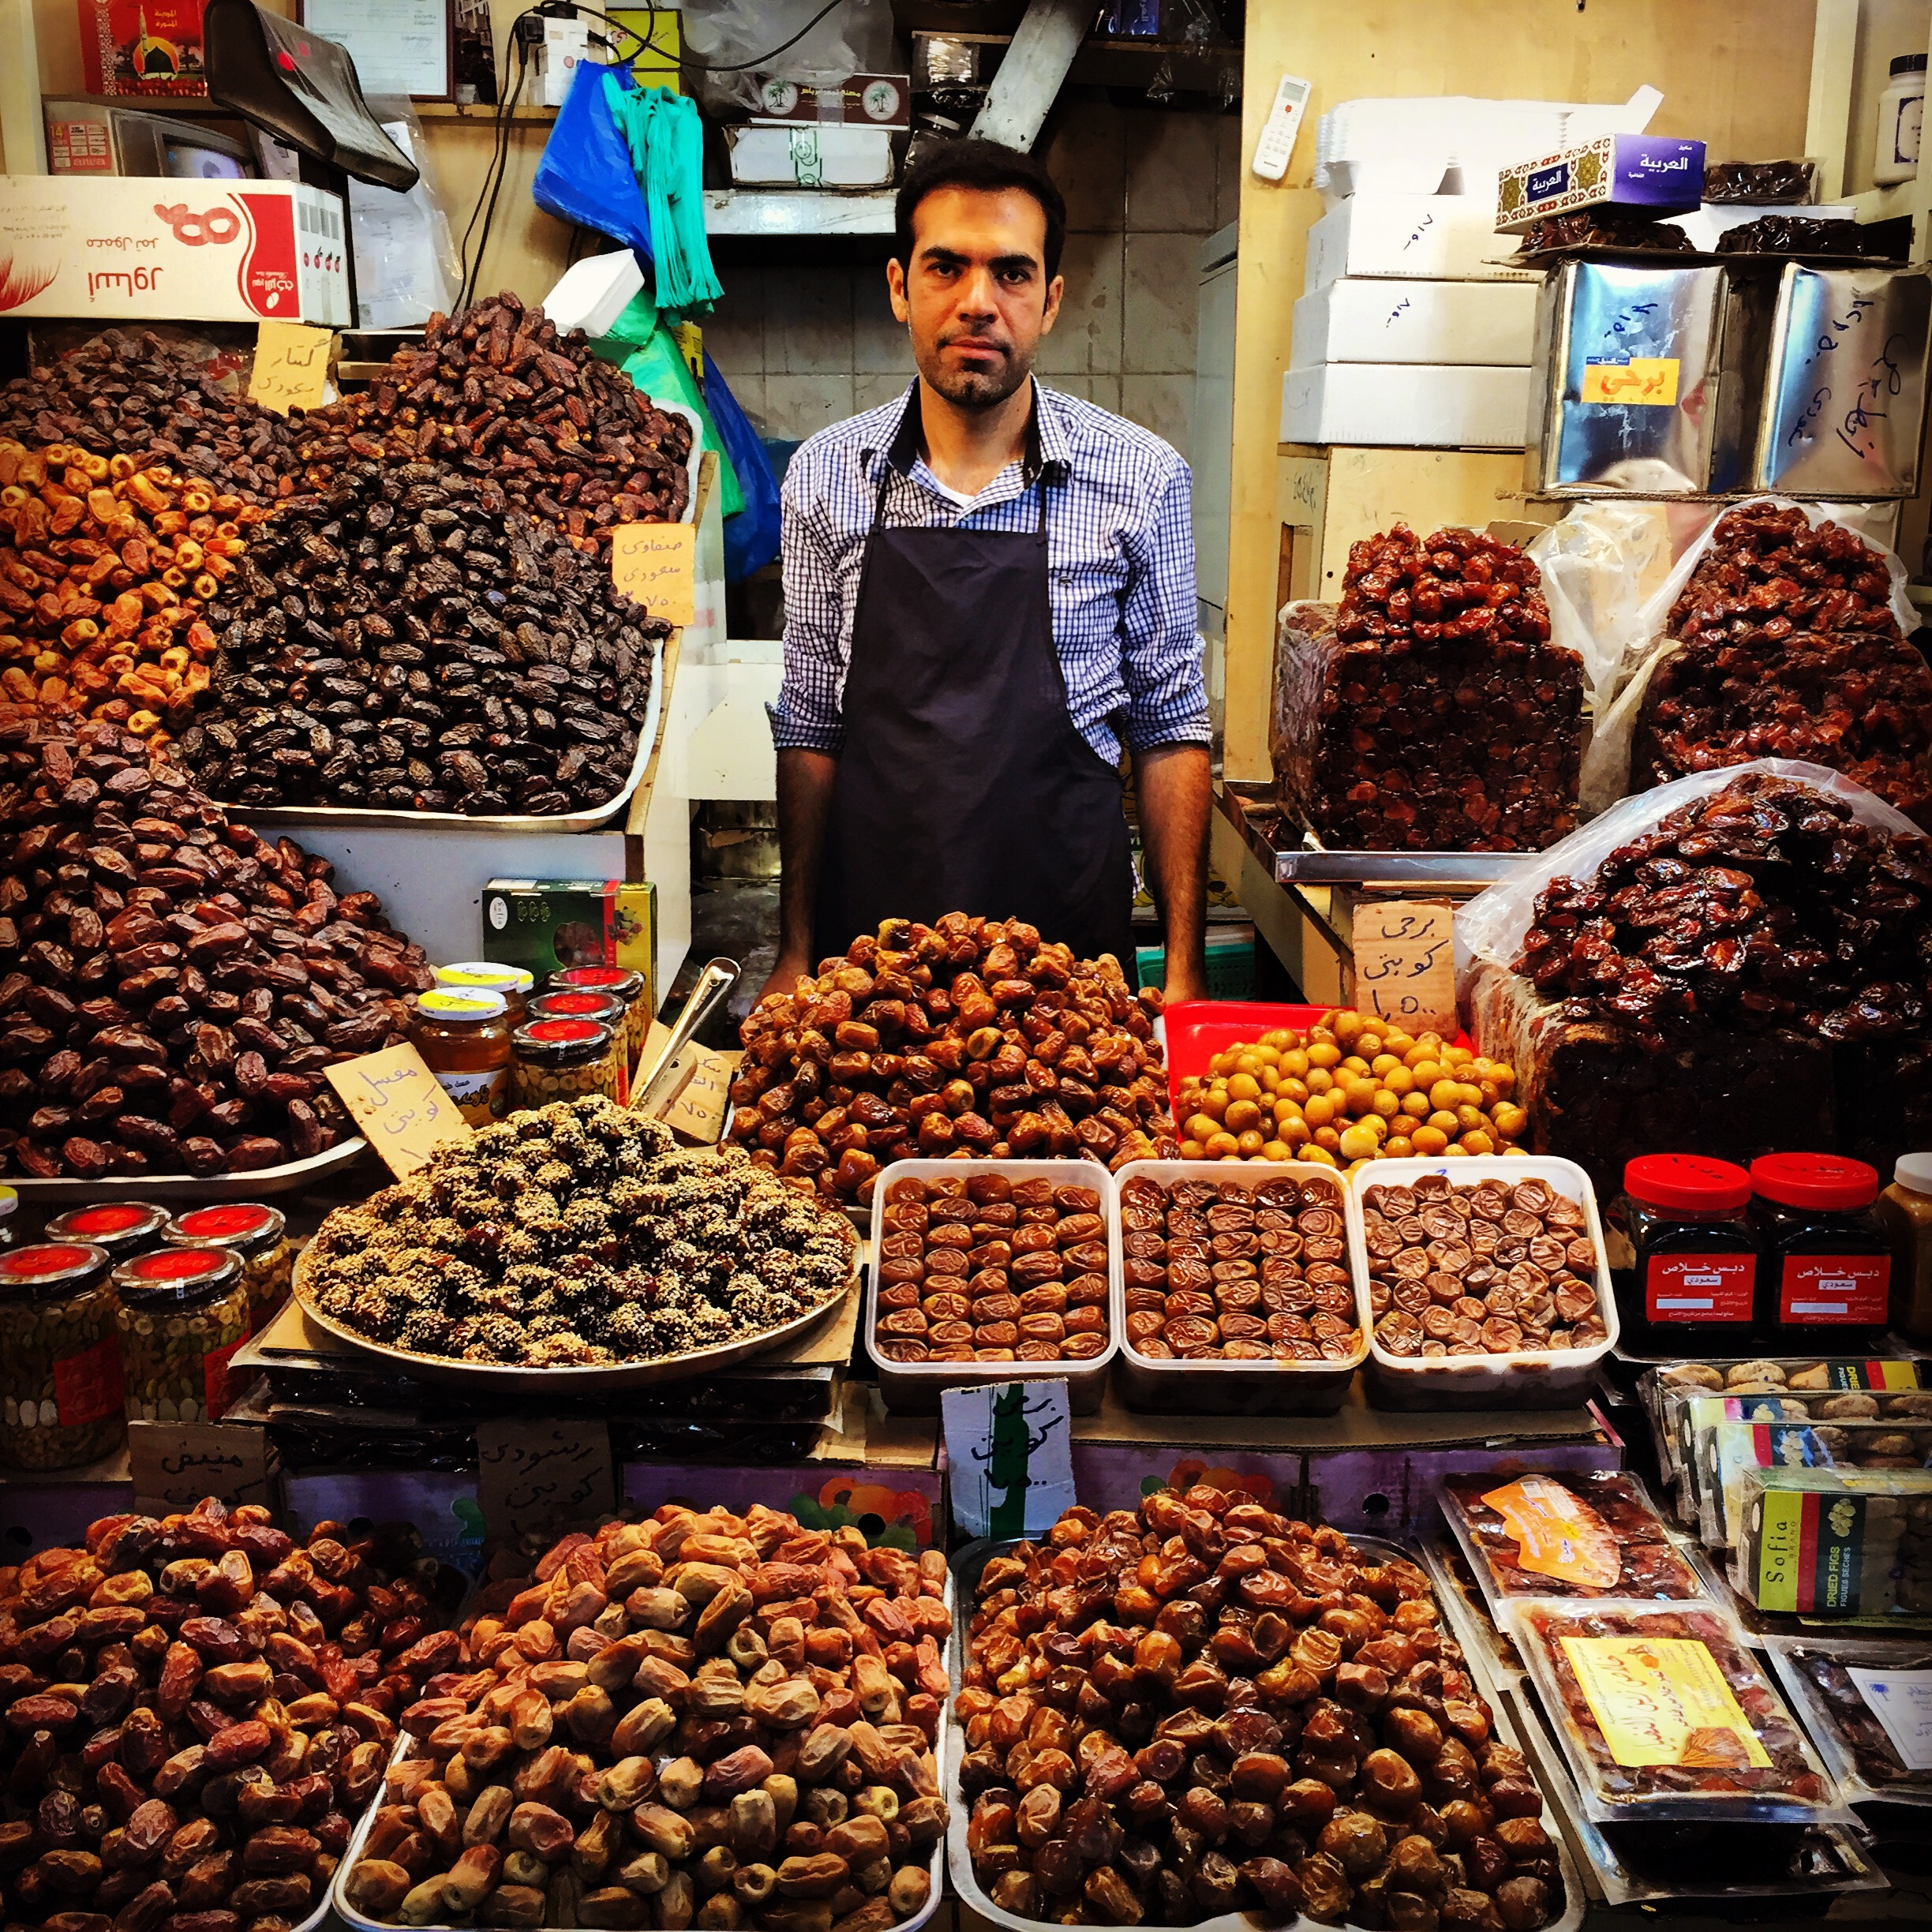 Date vendor in Kuwait market